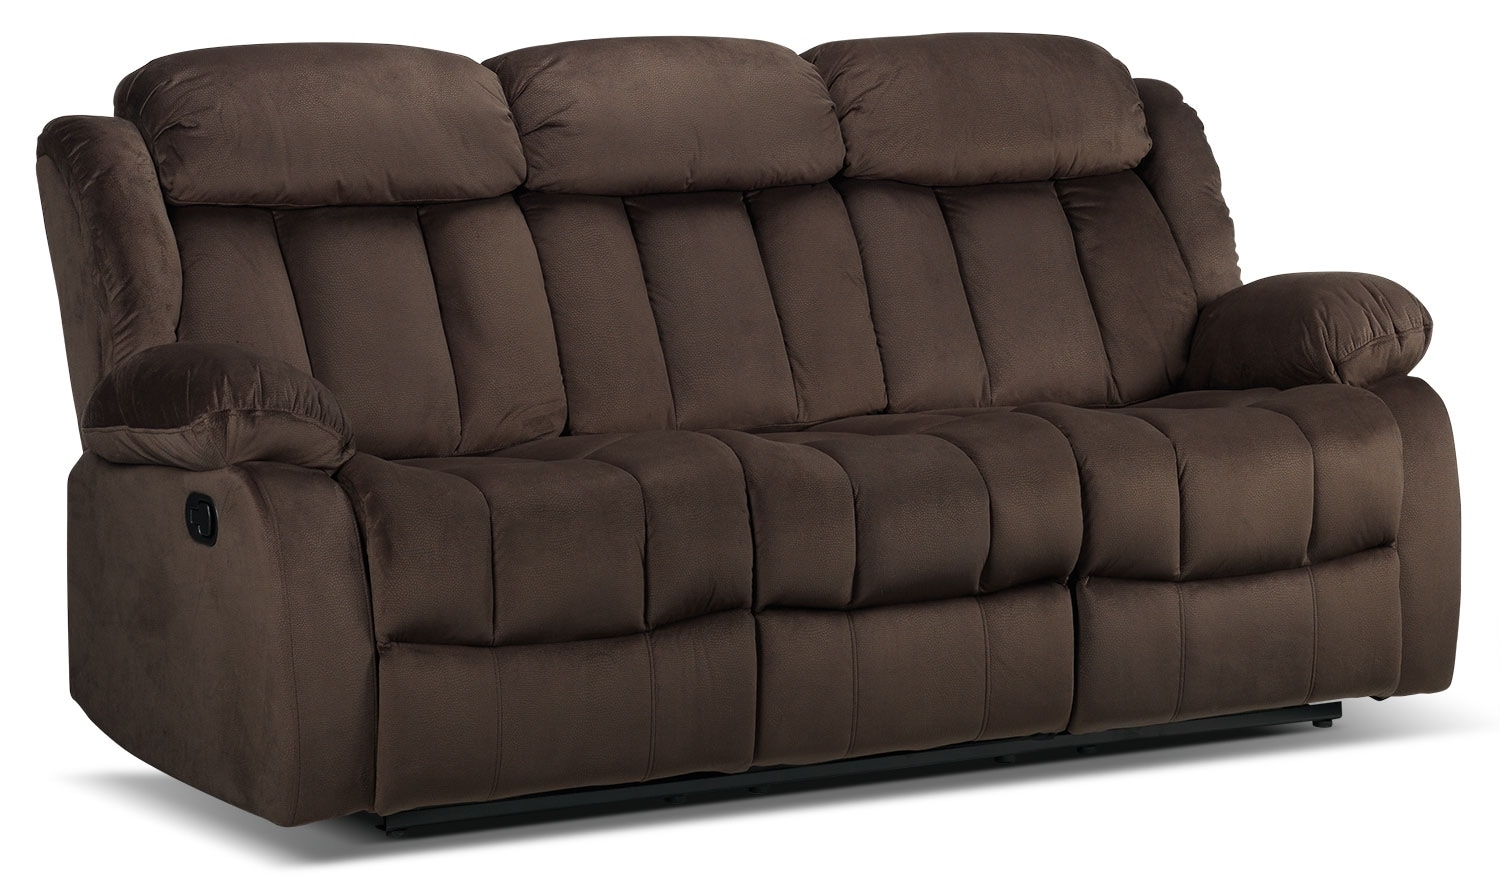 Alabama Reclining Sofa - Deep Brown